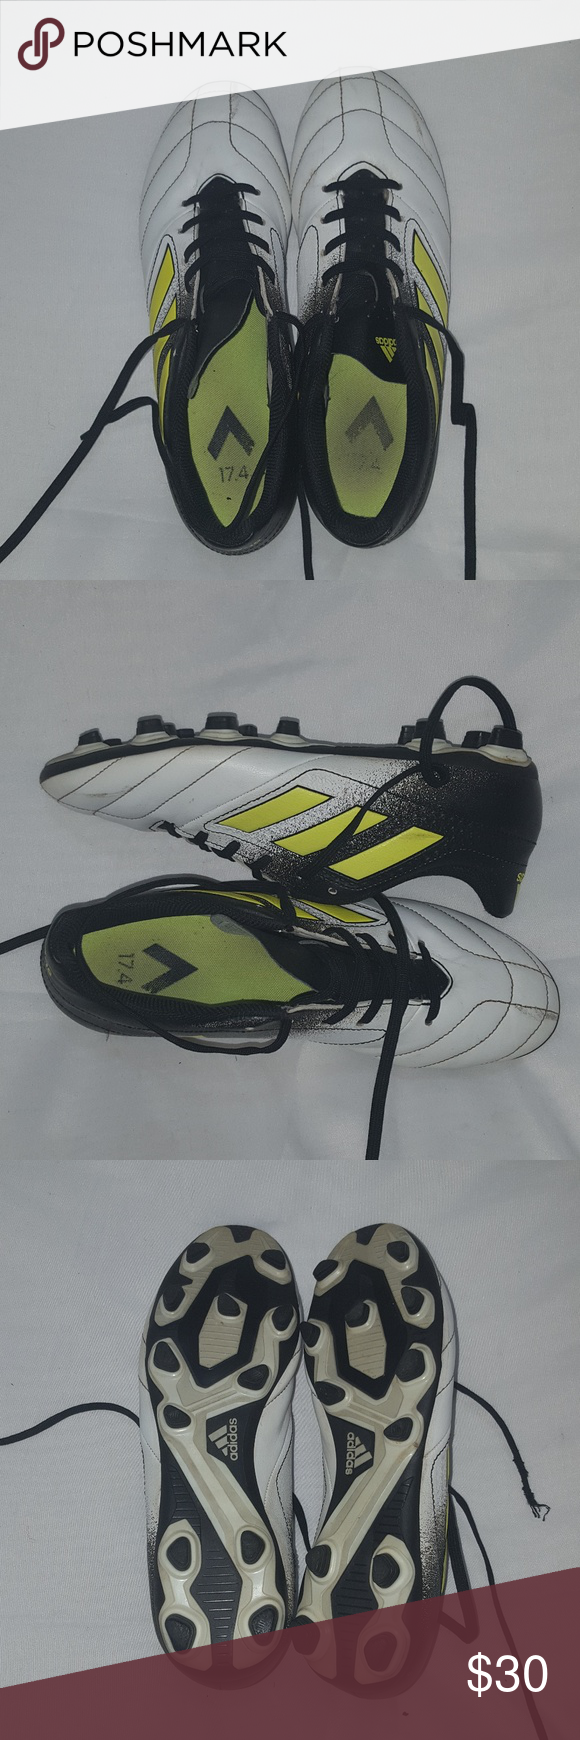 best service 76acd fd9f4 adidas Ace 17.4 FXG Mens S77090 NEW Adidas Ace 17.4 FXG Soccer Cleats -  S77090 -